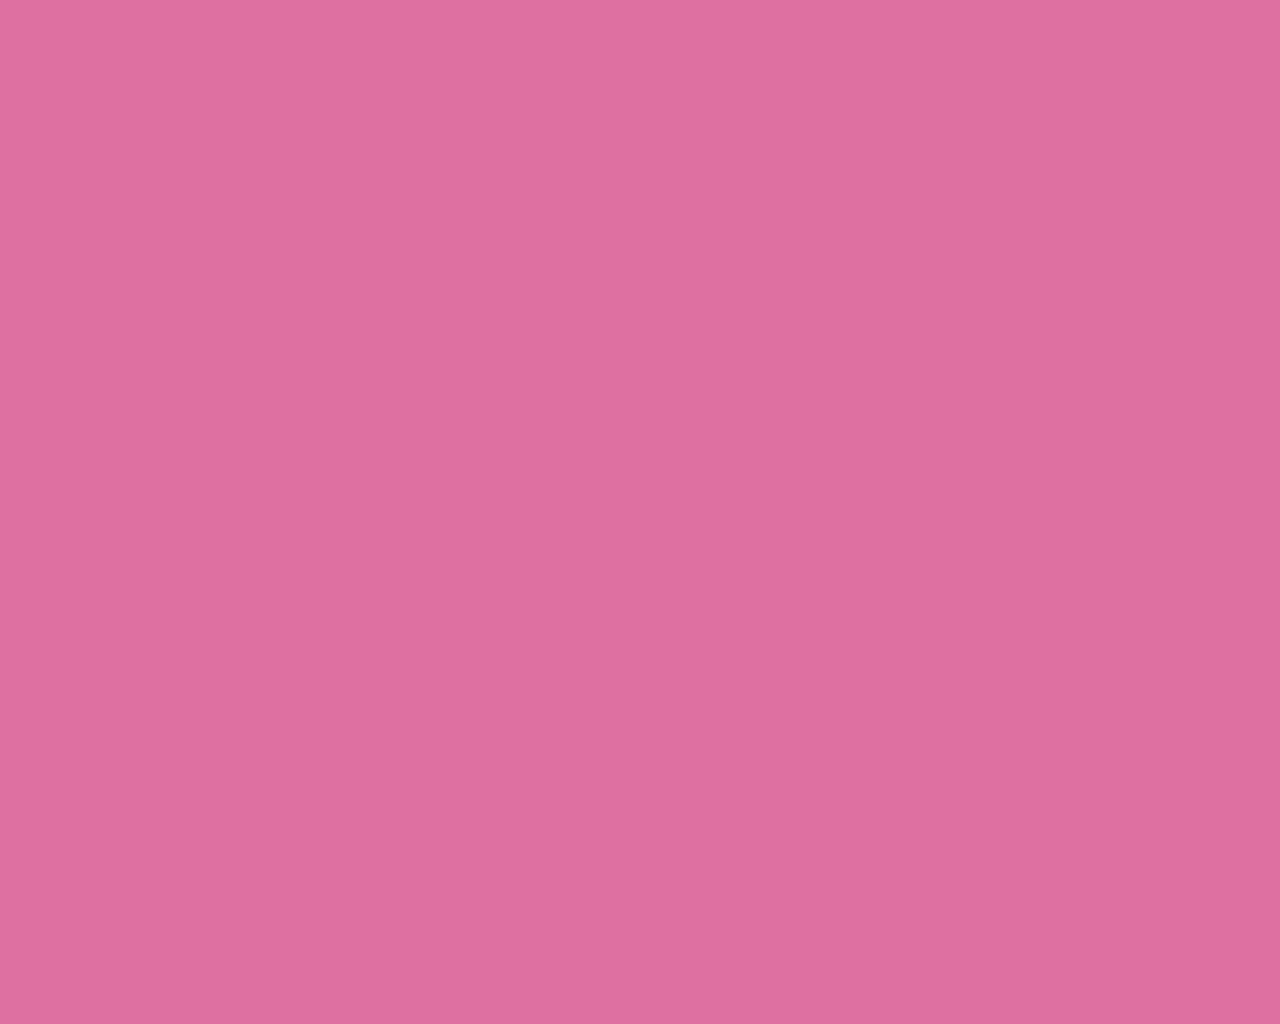 1280x1024 Thulian Pink Solid Color Background